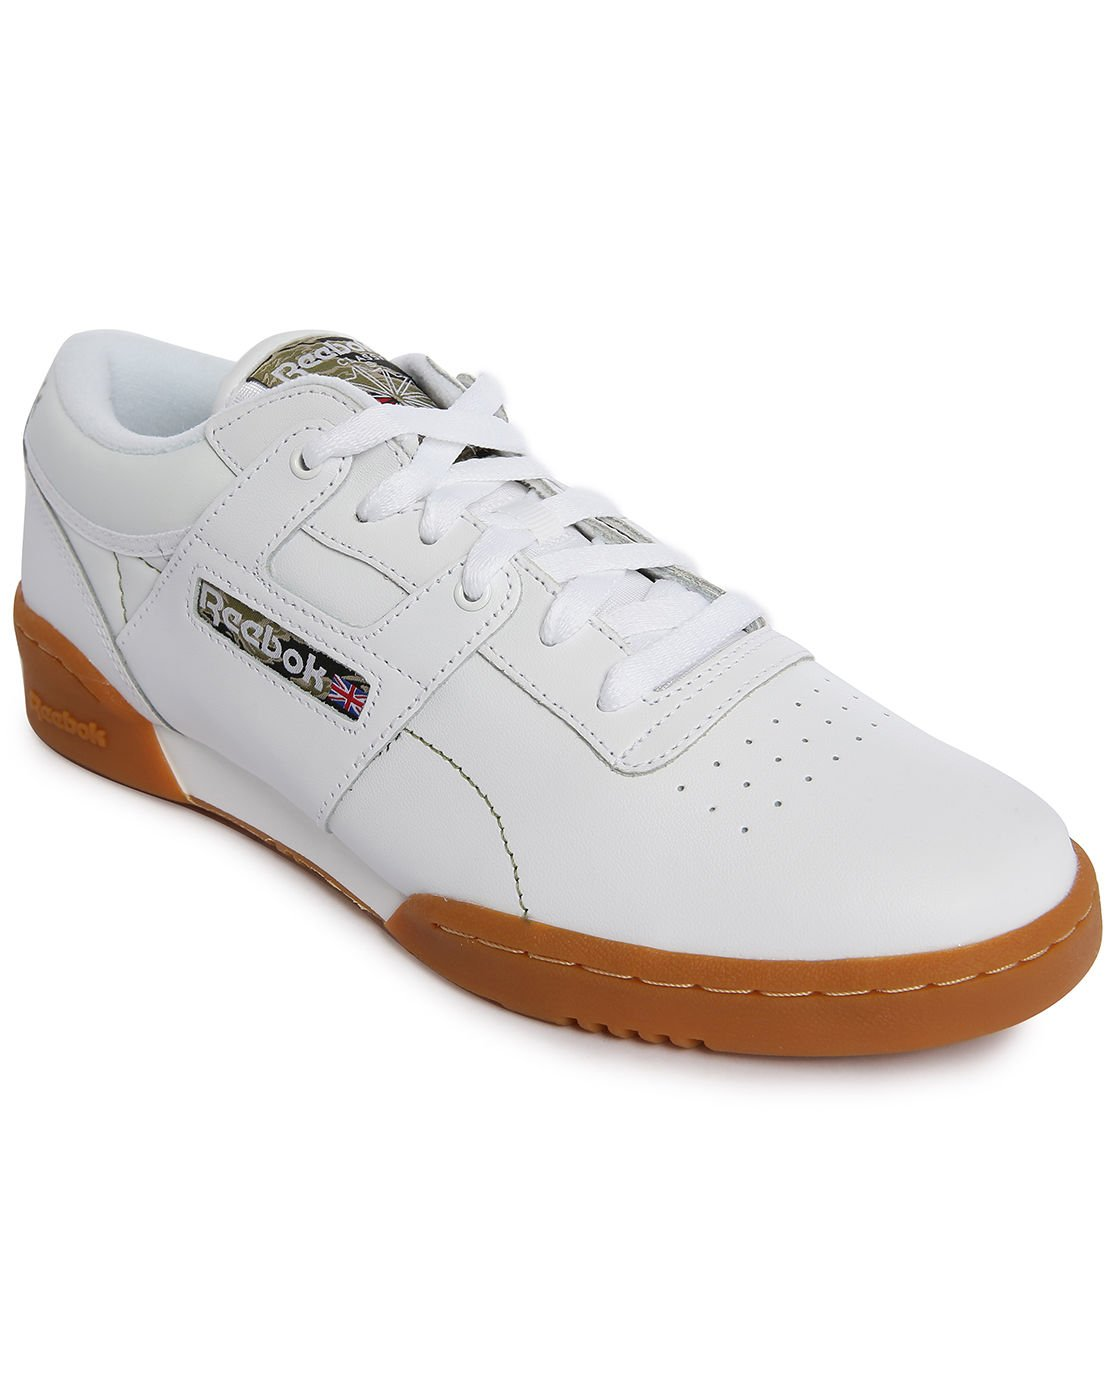 Reebok Workout Low White Leather Sneakers With Gumsole In ...